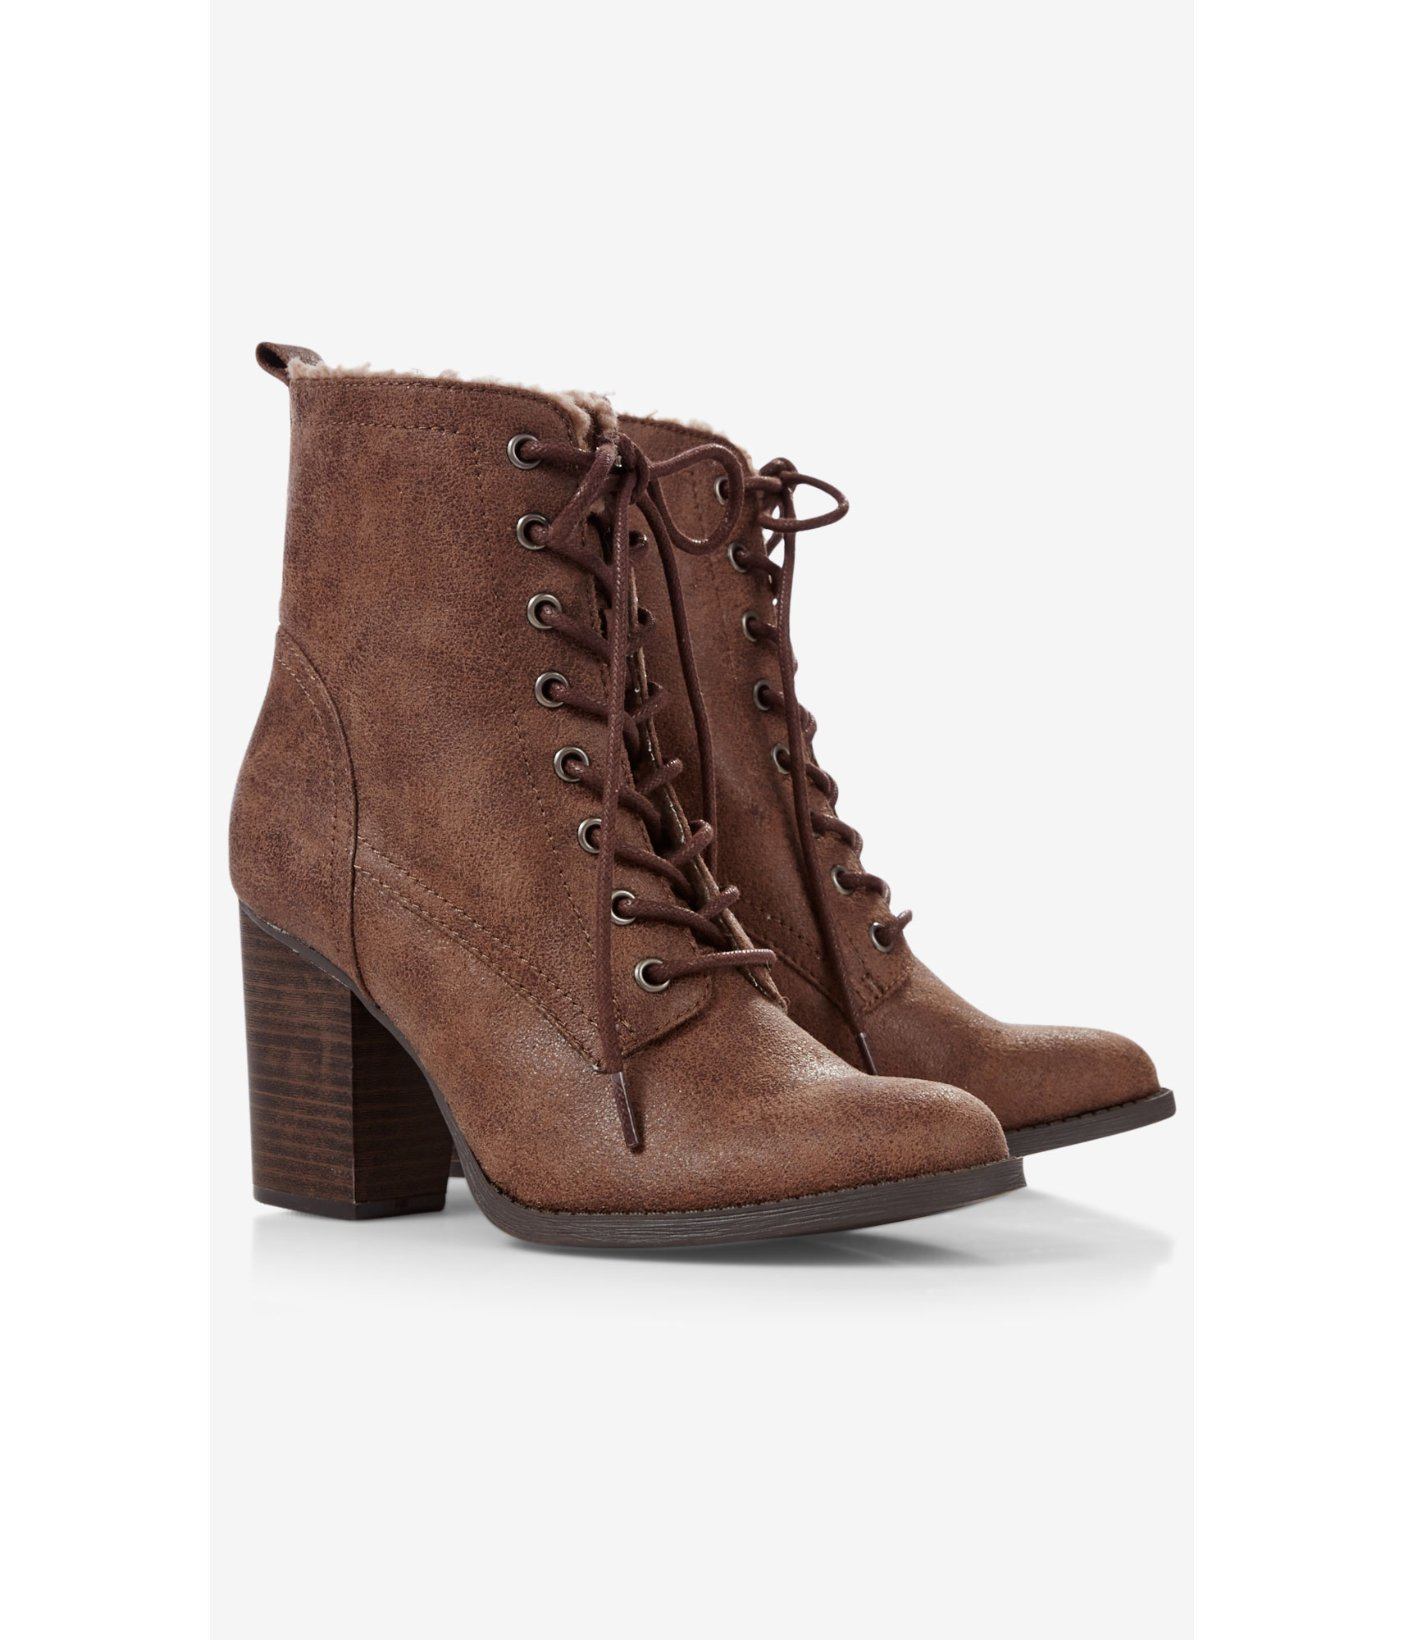 Express Lace Up Sherpa Lined Heeled Boot in Brown | Lyst